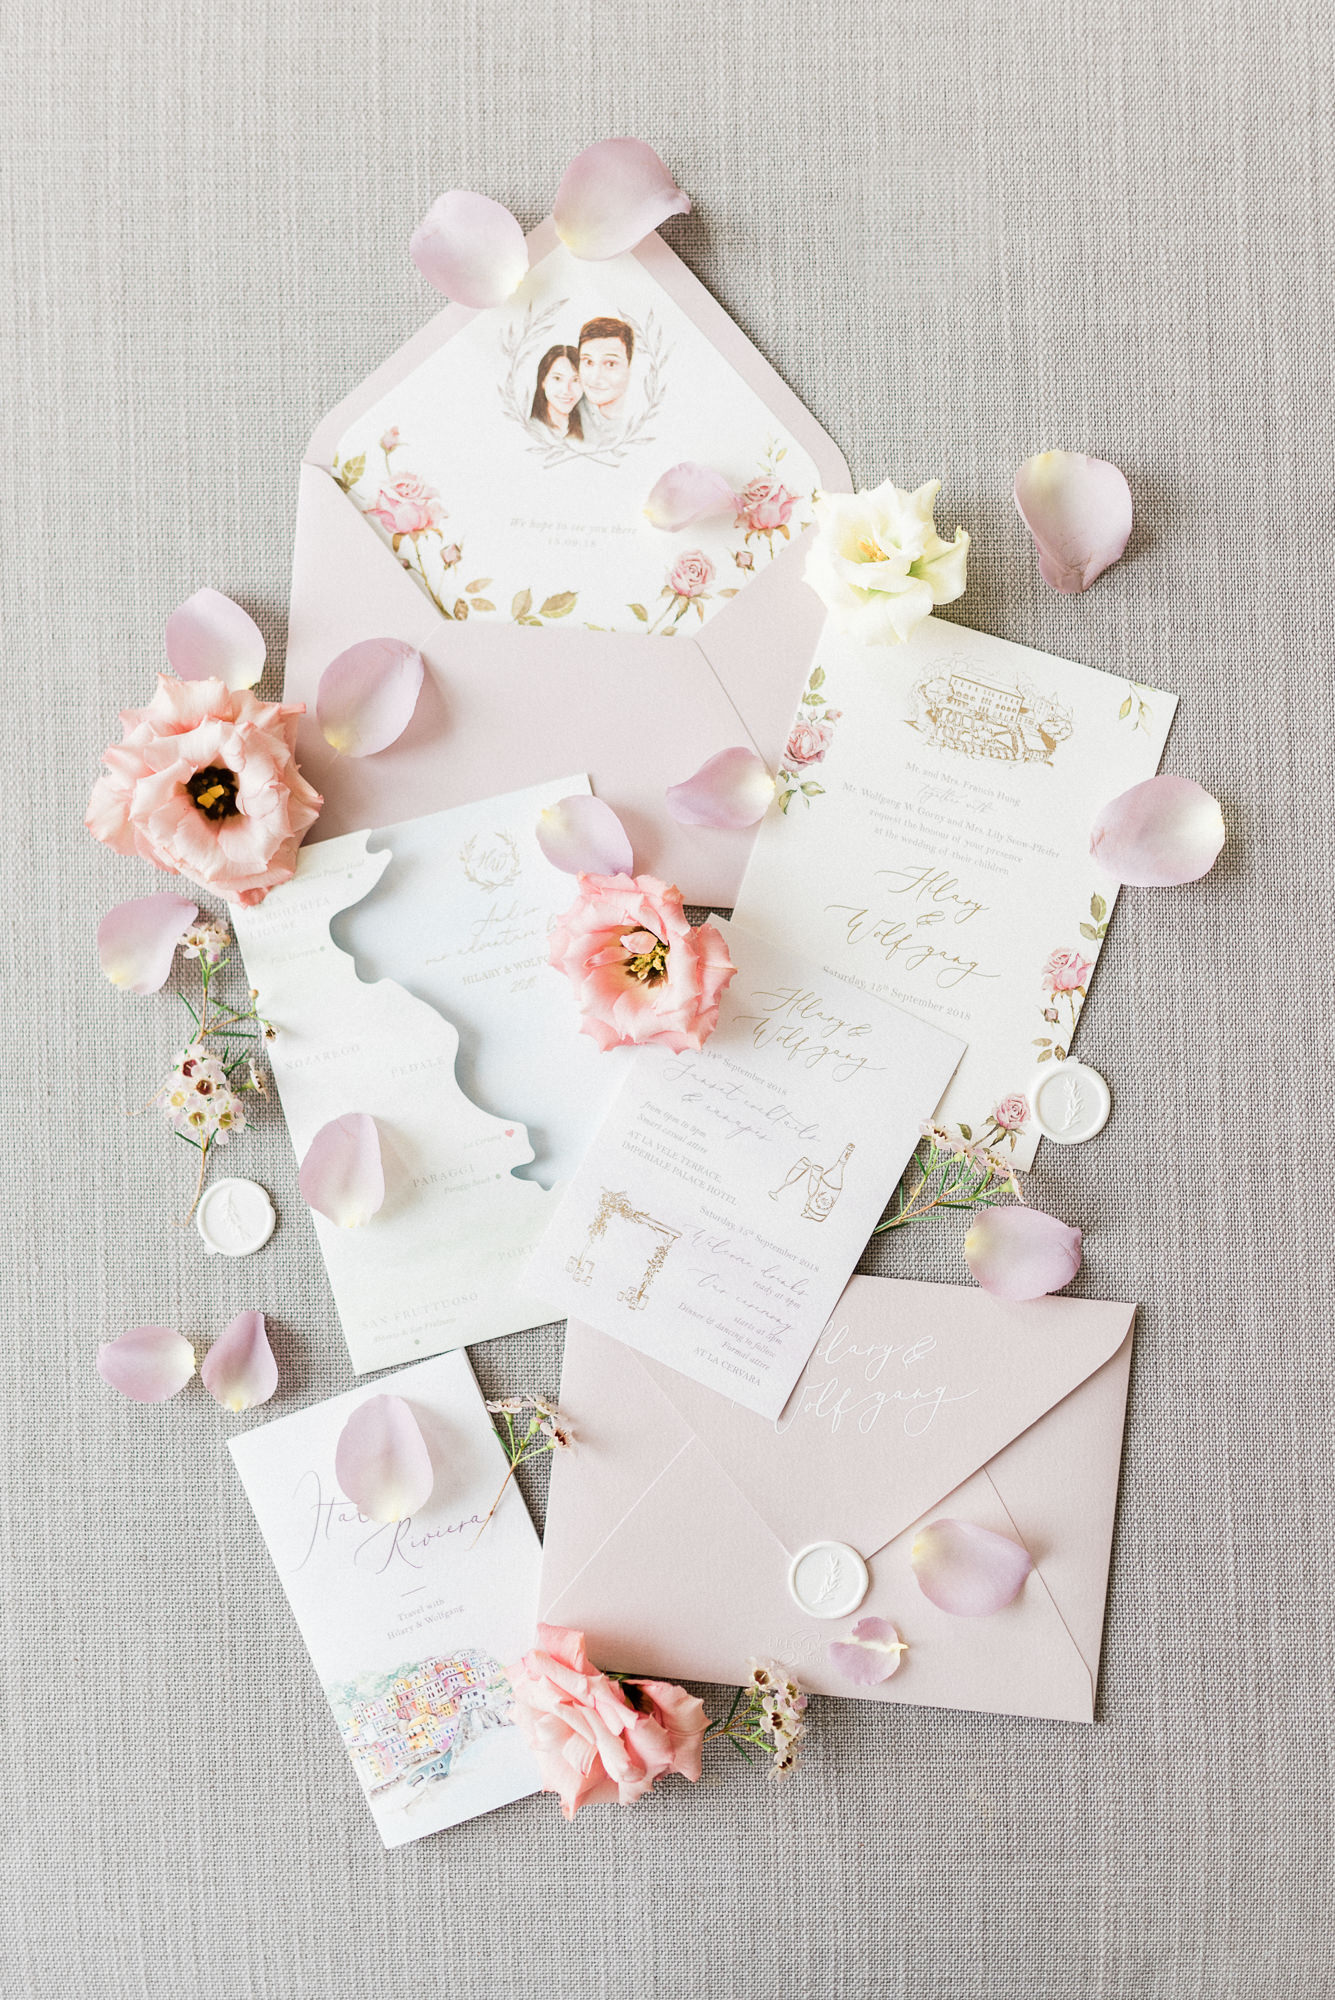 elegant-die-cut-invitations-with-floral-accents-map-worlds-best-wedding-photos-gianluca-adiovaso-italy-wedding-photographers